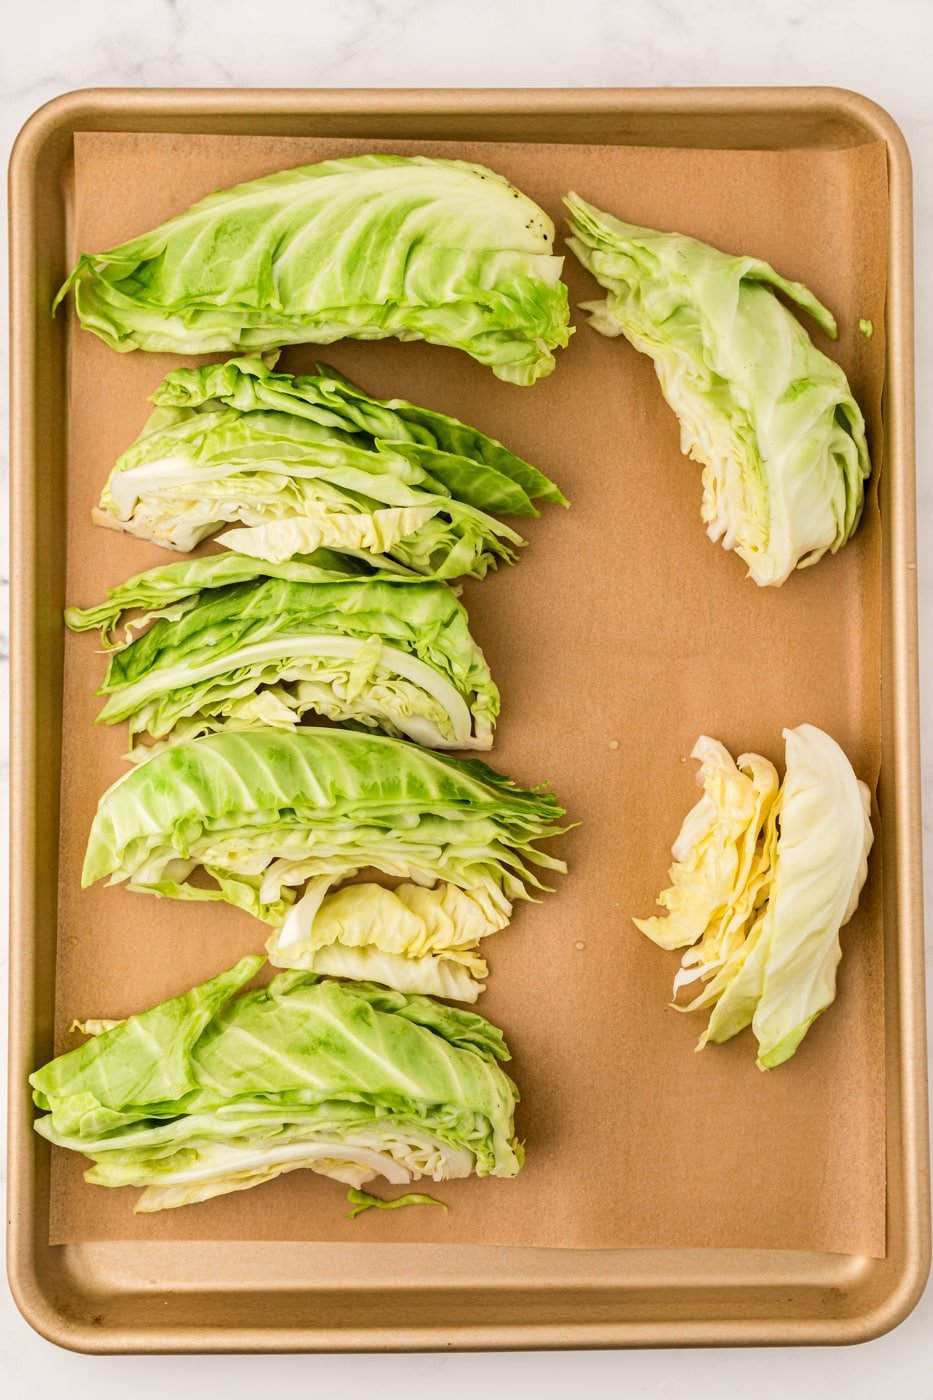 blanched cabbage on baking sheet ready to be frozen